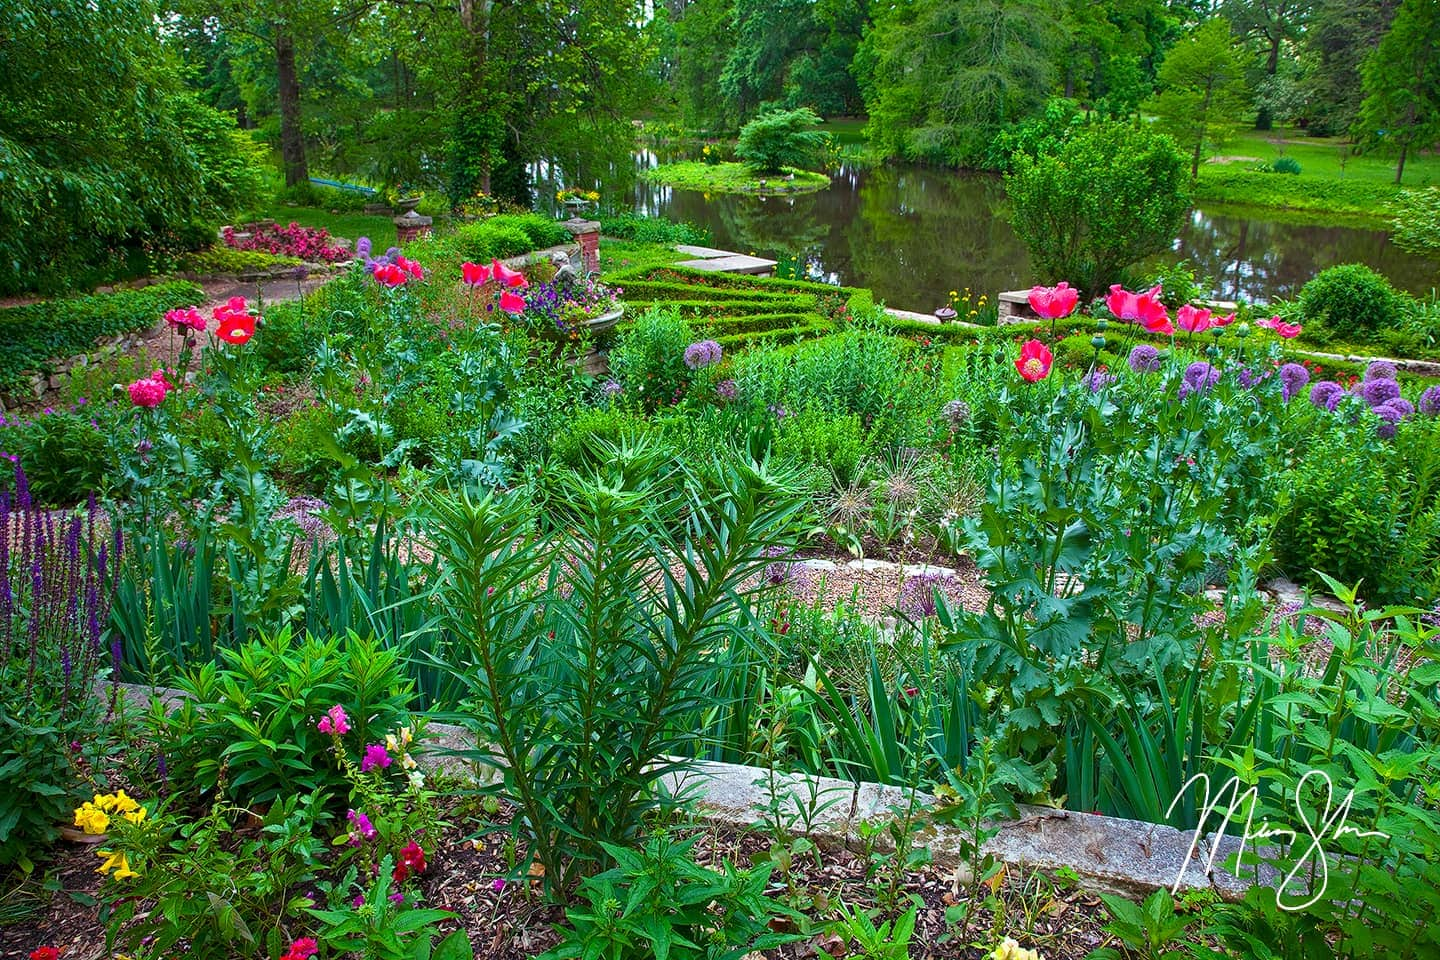 Open edition fine art print of Bartlett Arboretum Gardens from Mickey Shannon Photography. Location: Bartlett Arboretum, Belle Plaine, Kansas